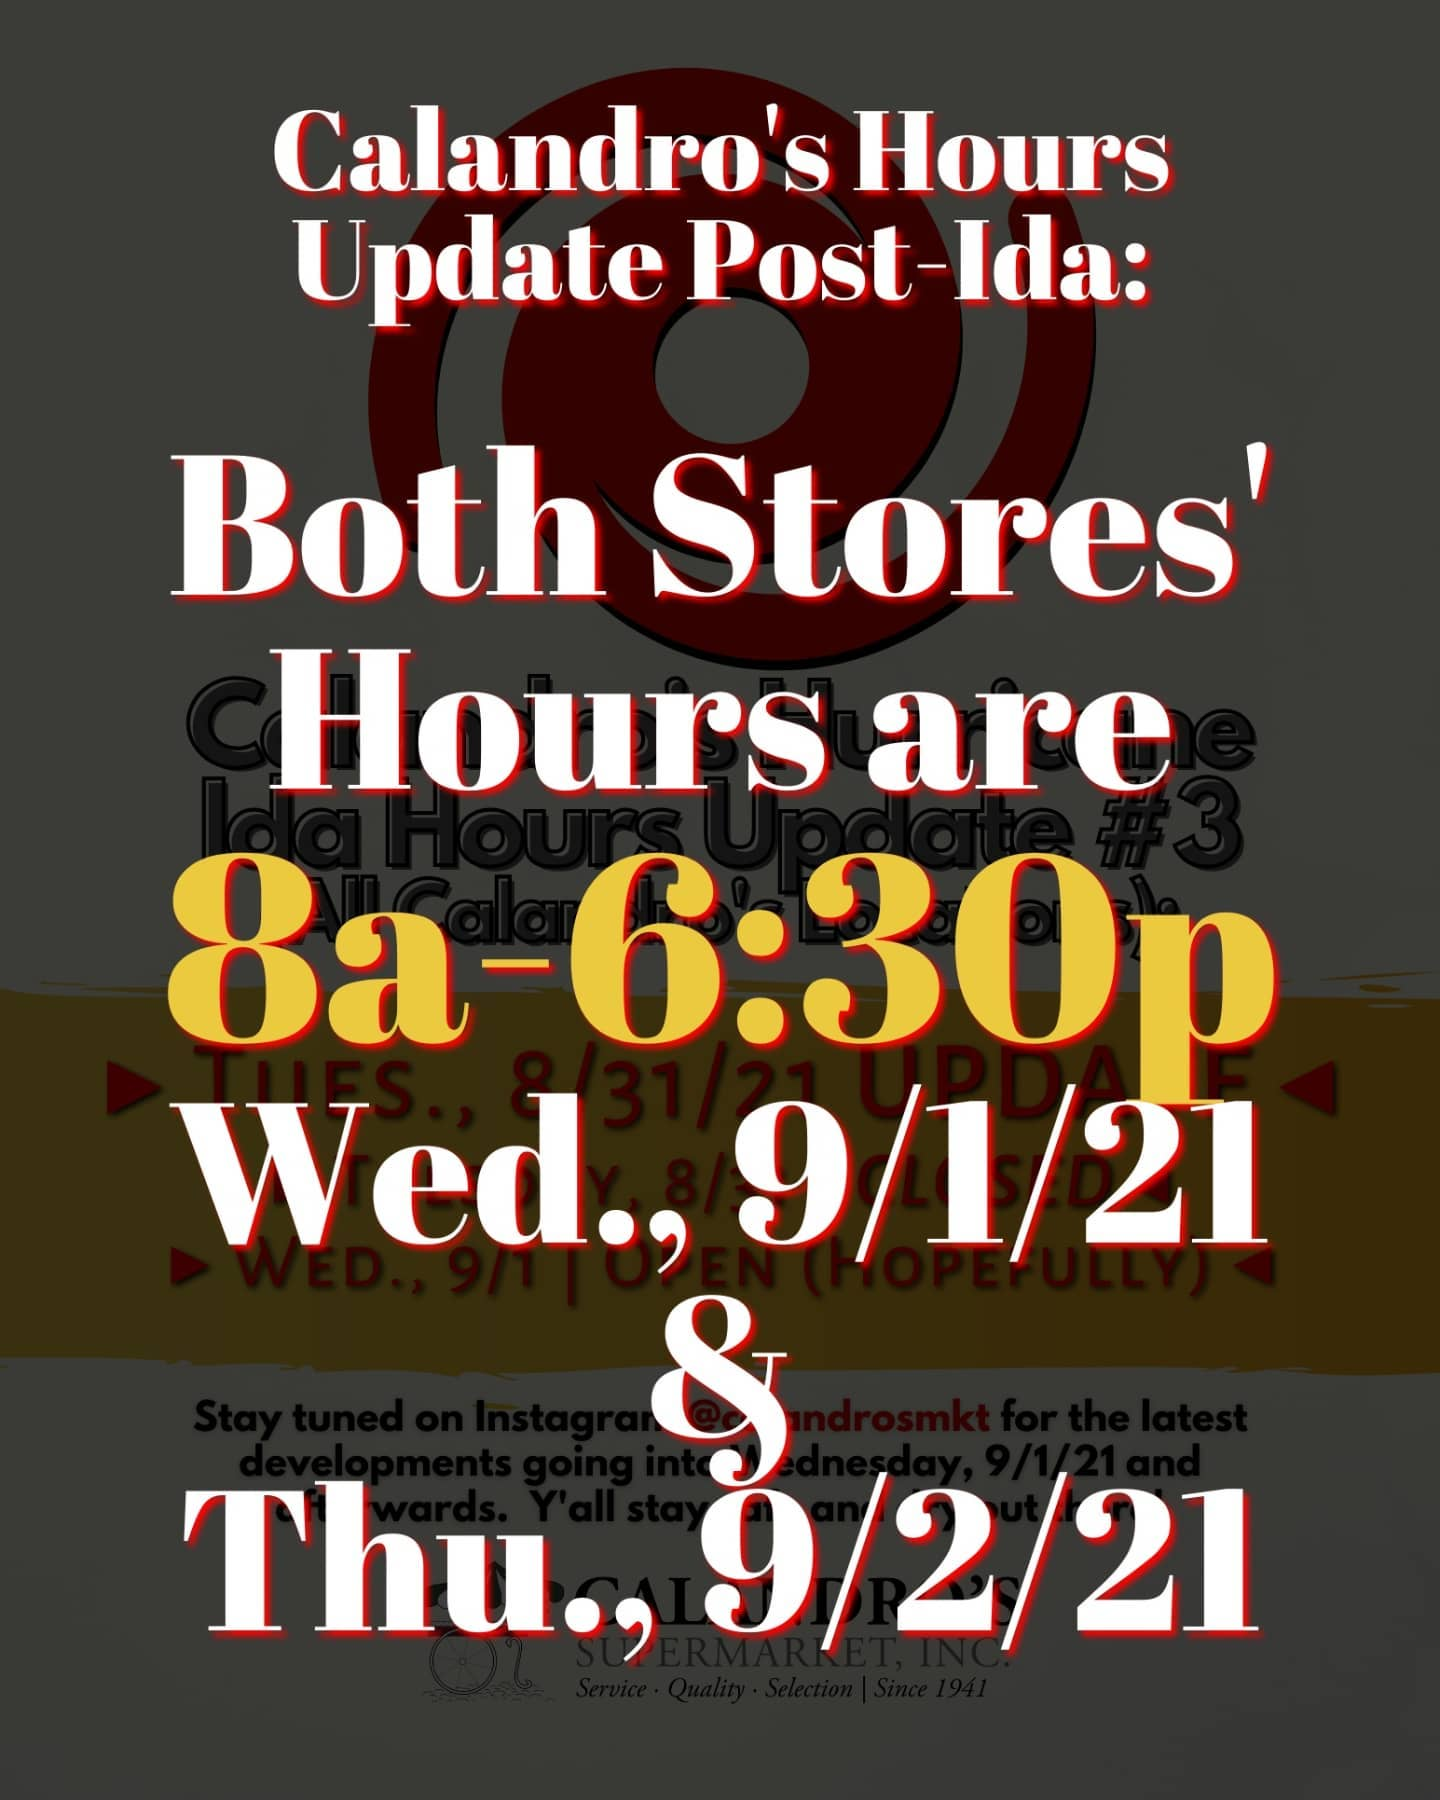 Another Calandro's Hours Update!!! 🕰️⏲️ We are OPEN! But today (Wed., 9/1) & tomorrow (Thurs.,